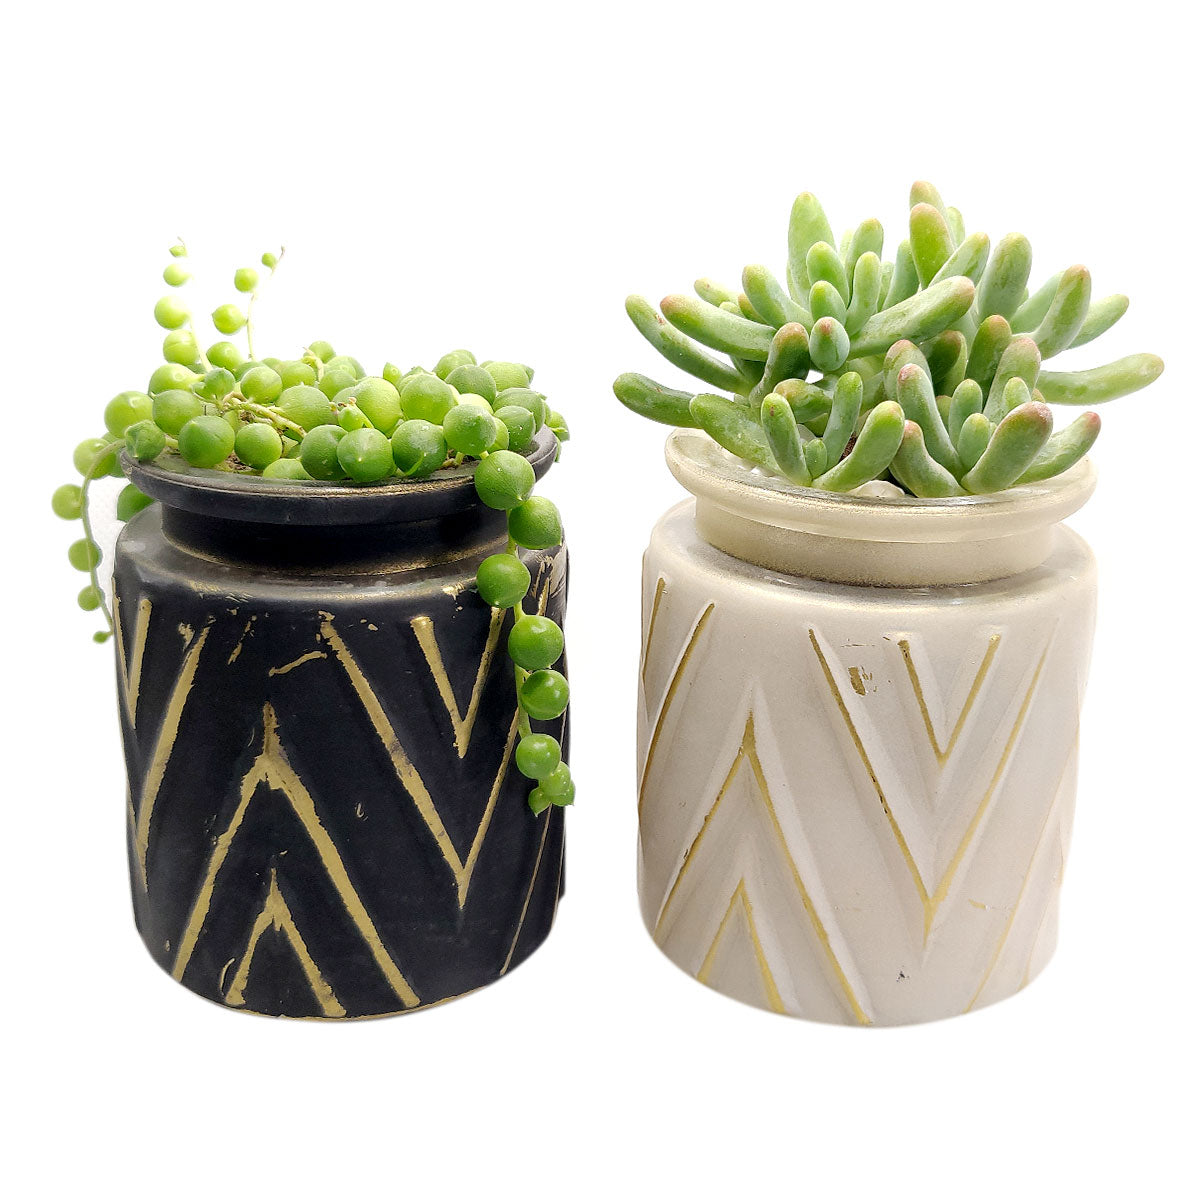 Pot for sale, Mini pot for succulent, Succulent pot decor ideas, Chevron Pattern pot pack, Flower pot for sale, glass pots for planting, succulent gift for holiday